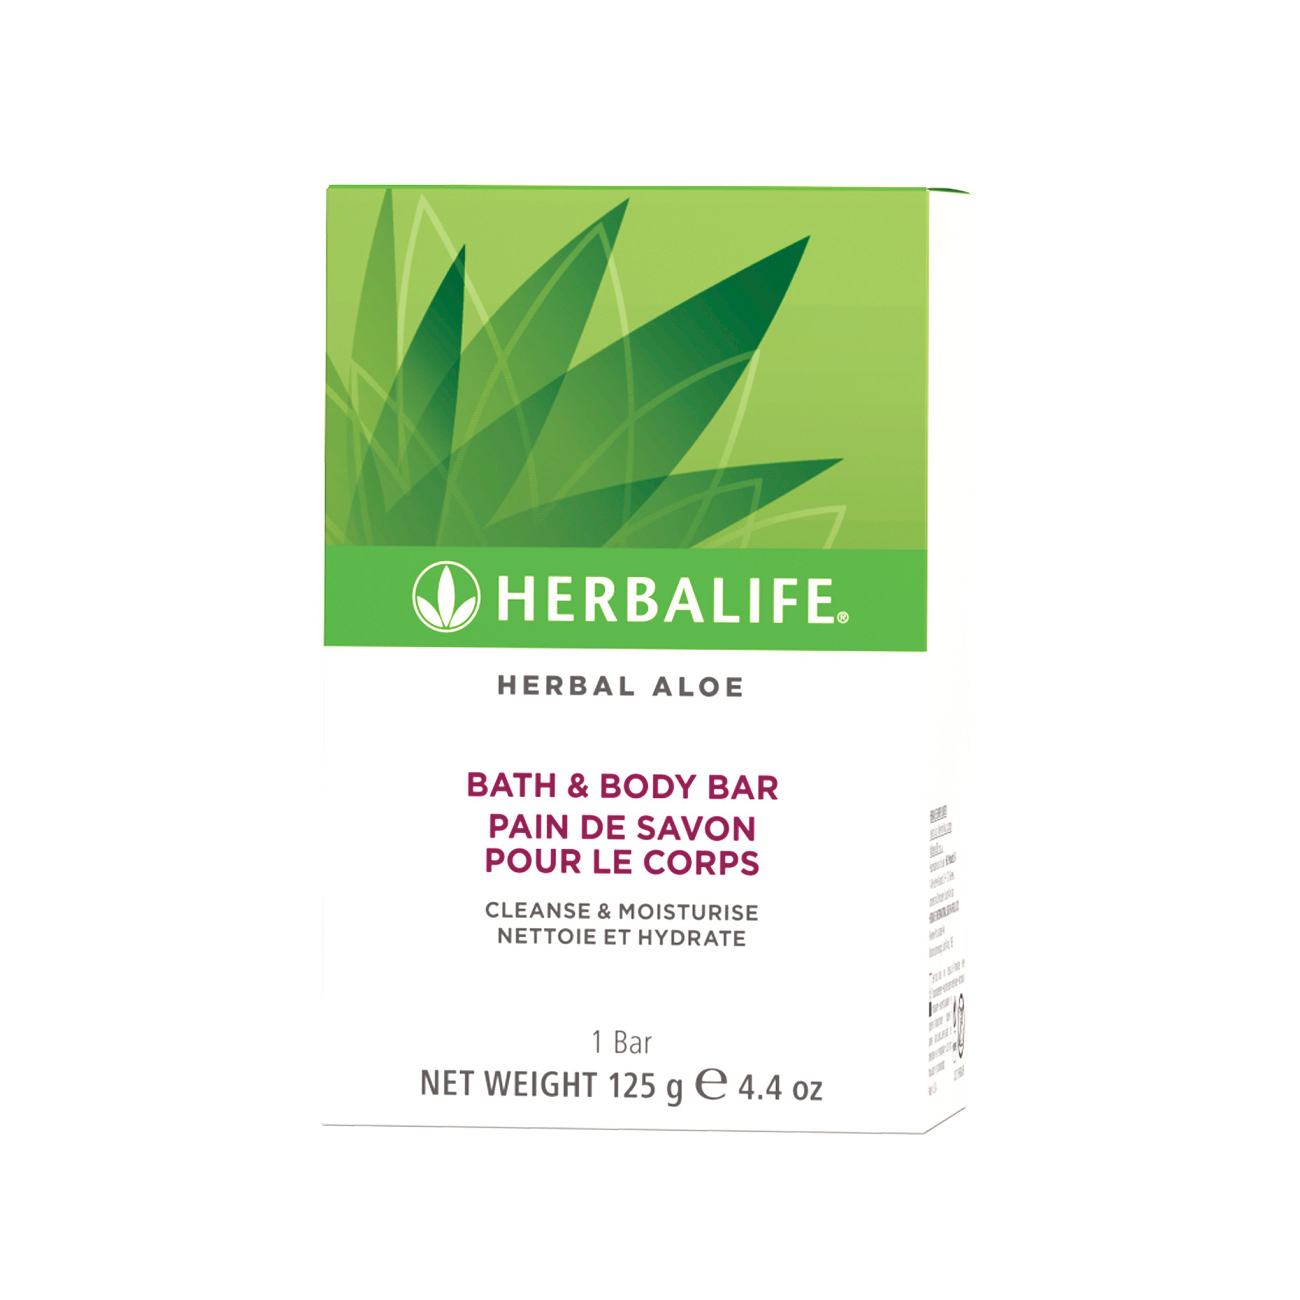 Herbal Aloe Bath & Body Bar  product shot